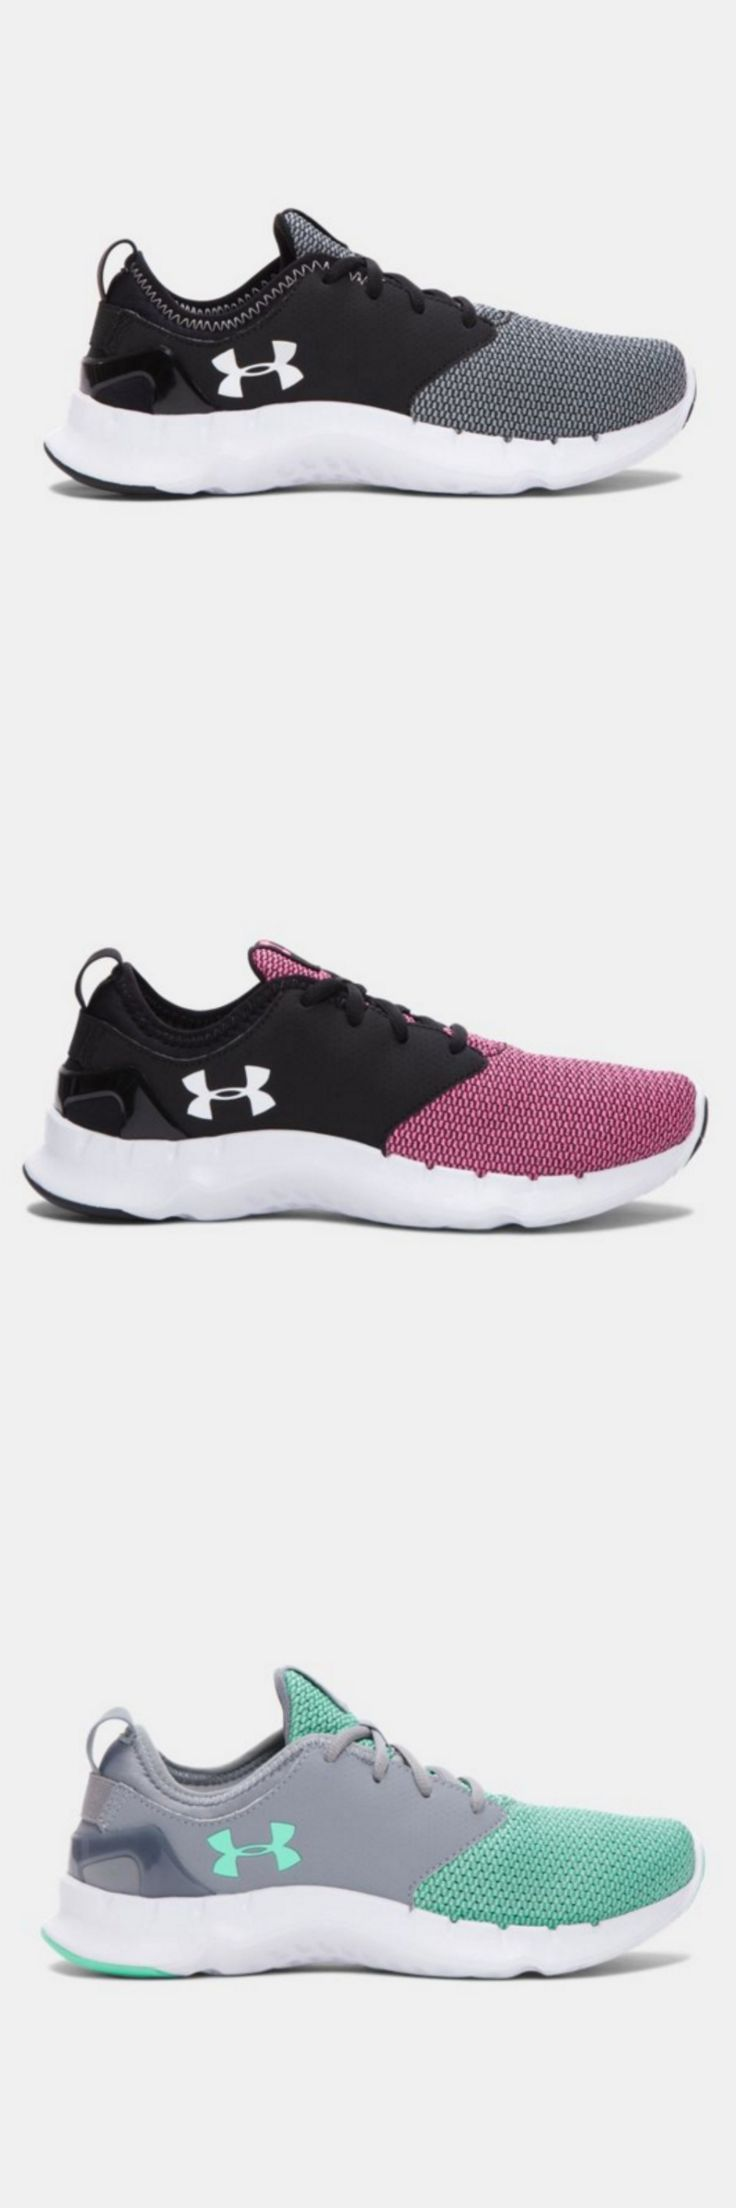 21 best for the feet images on pinterest workout gear shoe and